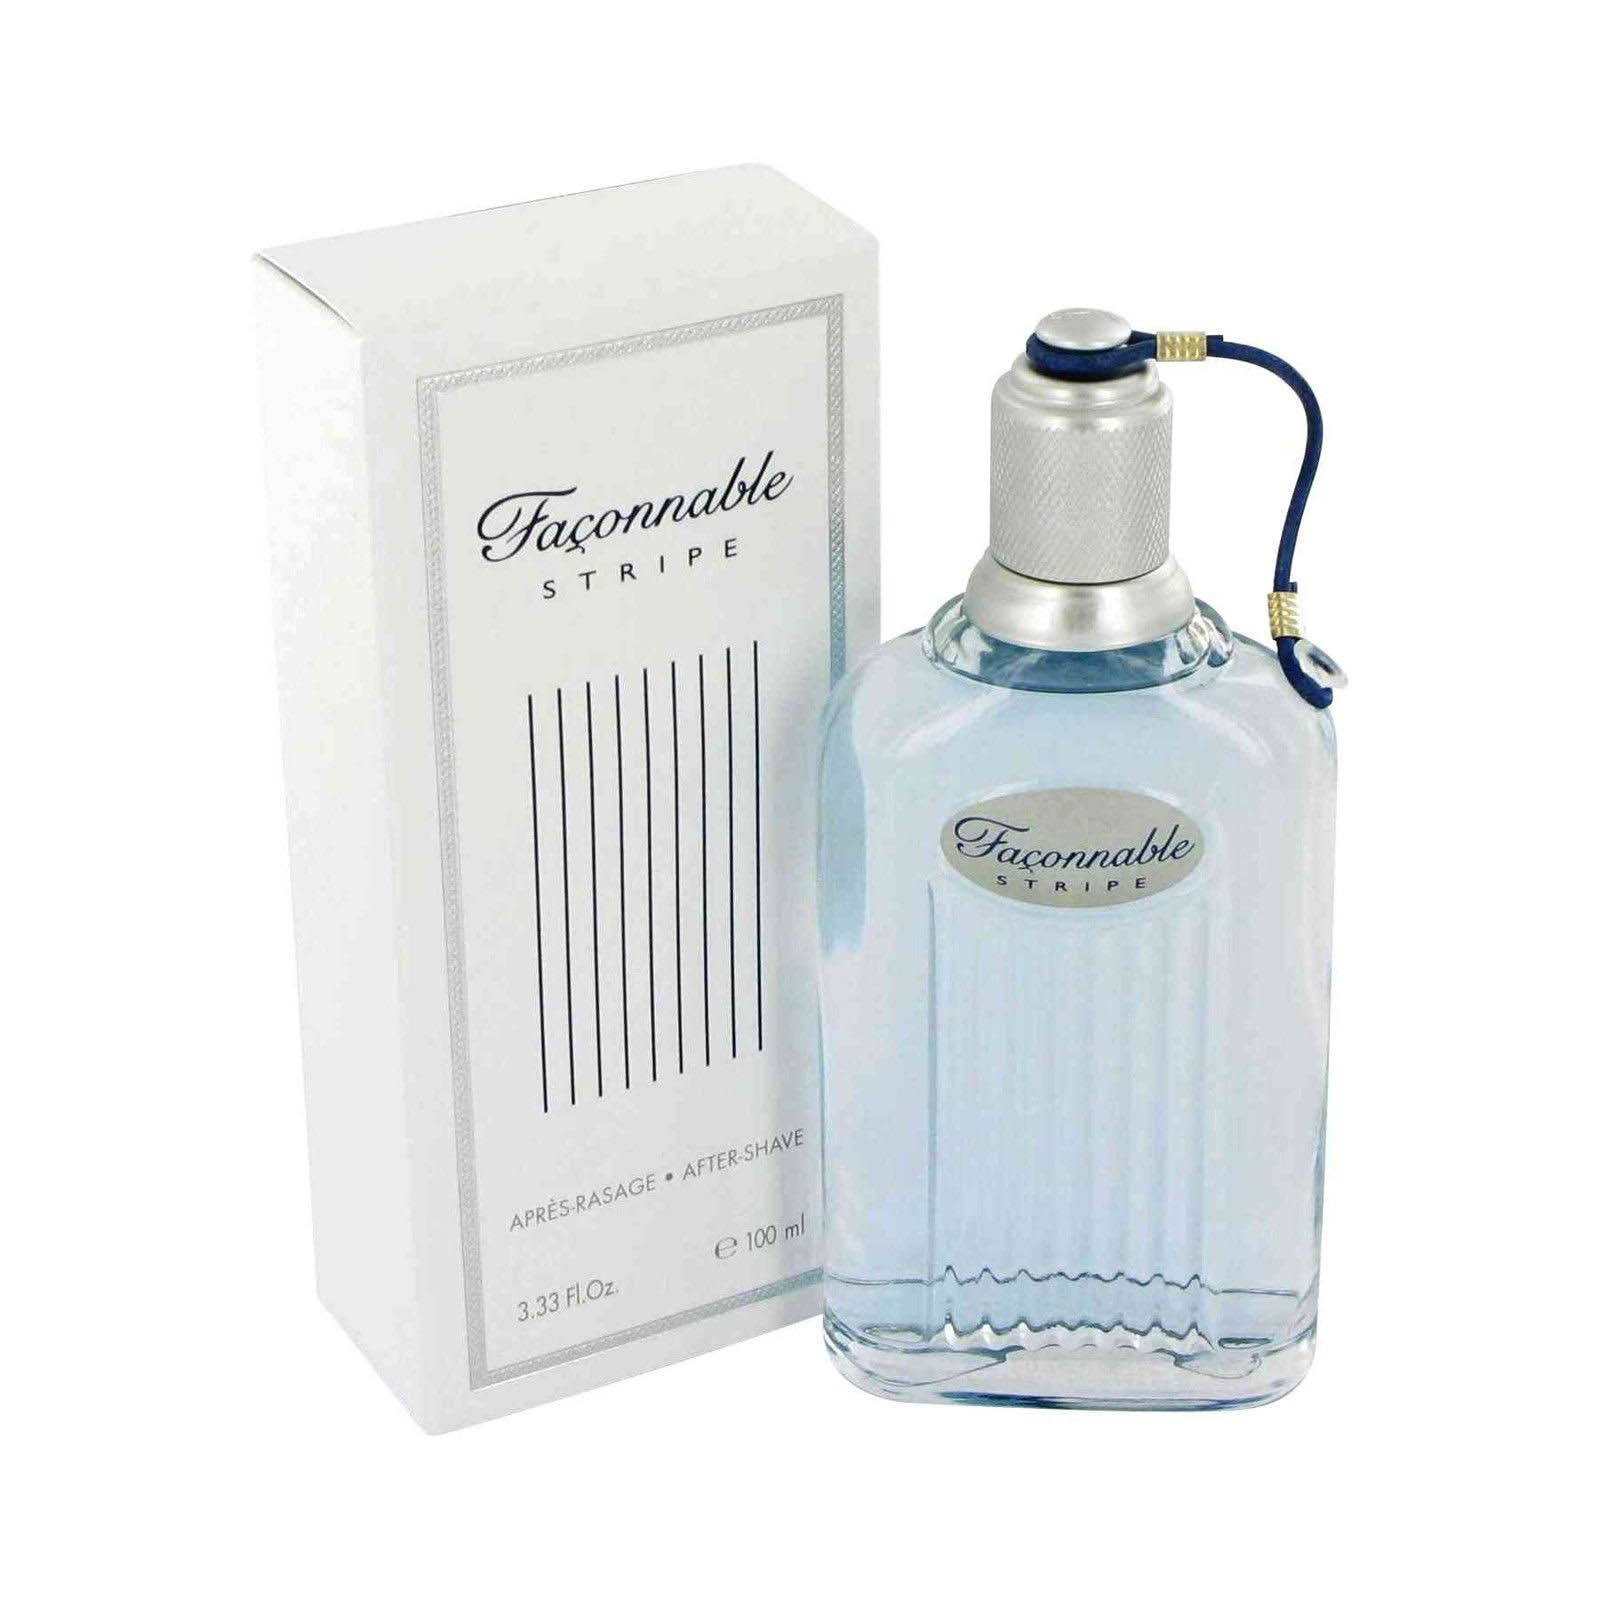 Image of Faconnable Stripe After Shave Lozione 100ml P00009073